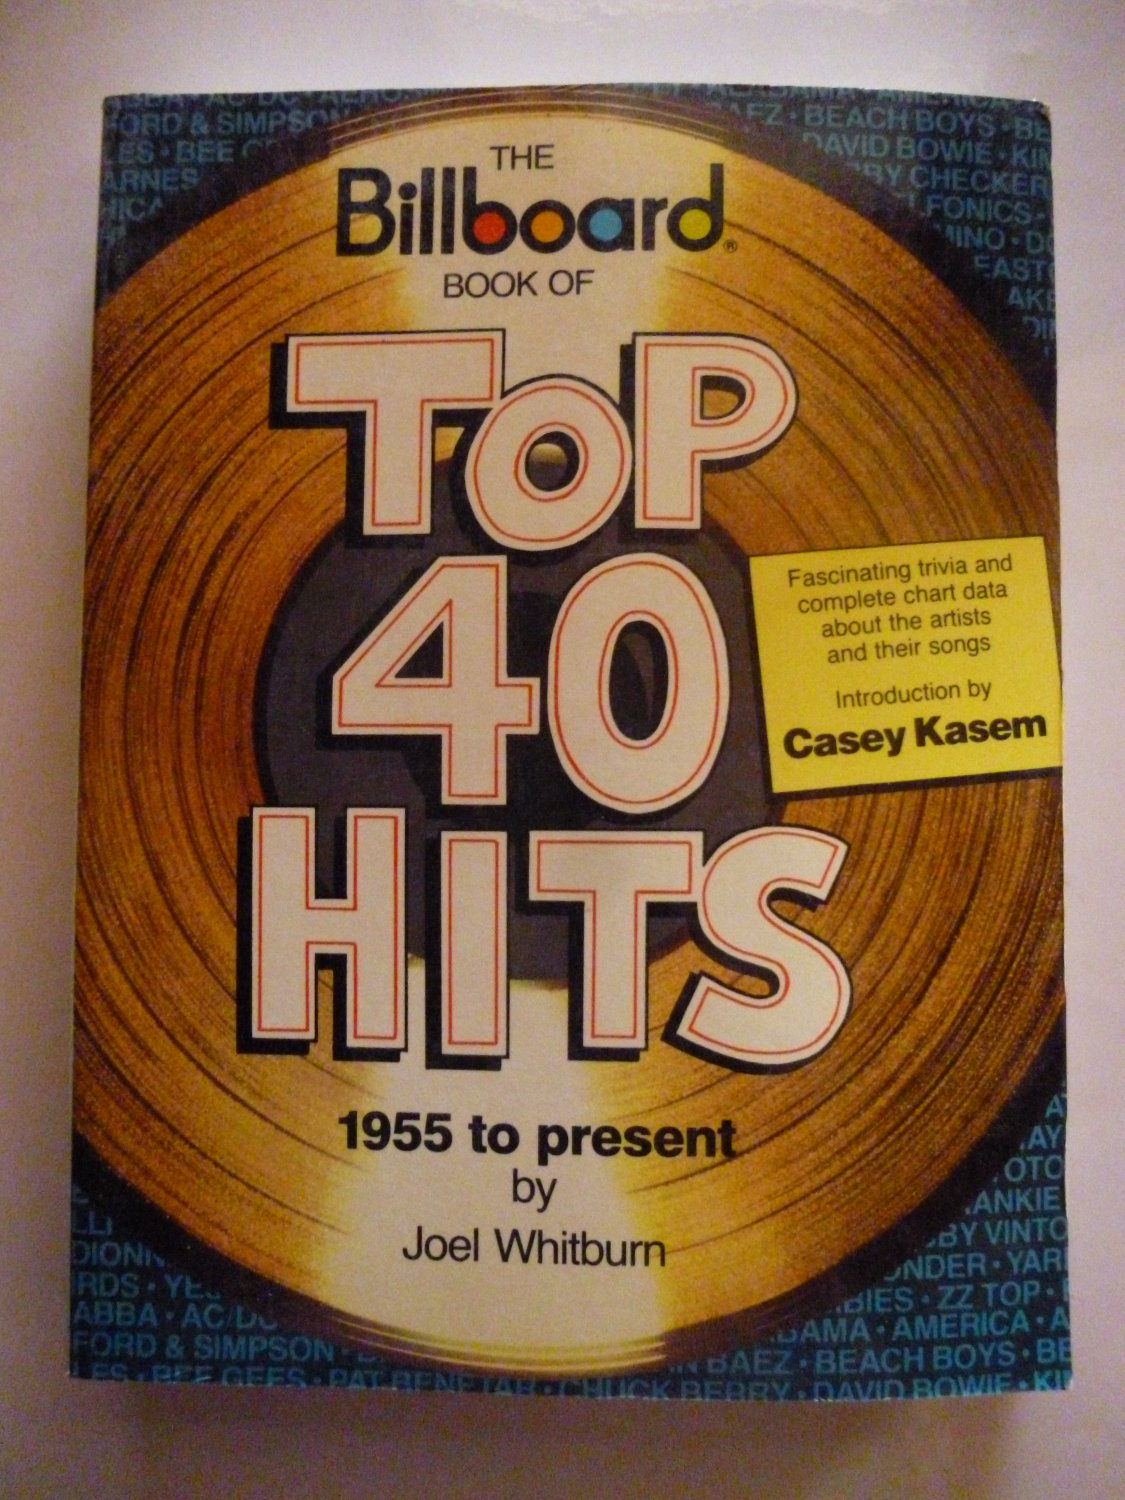 billboard song of the year 1982